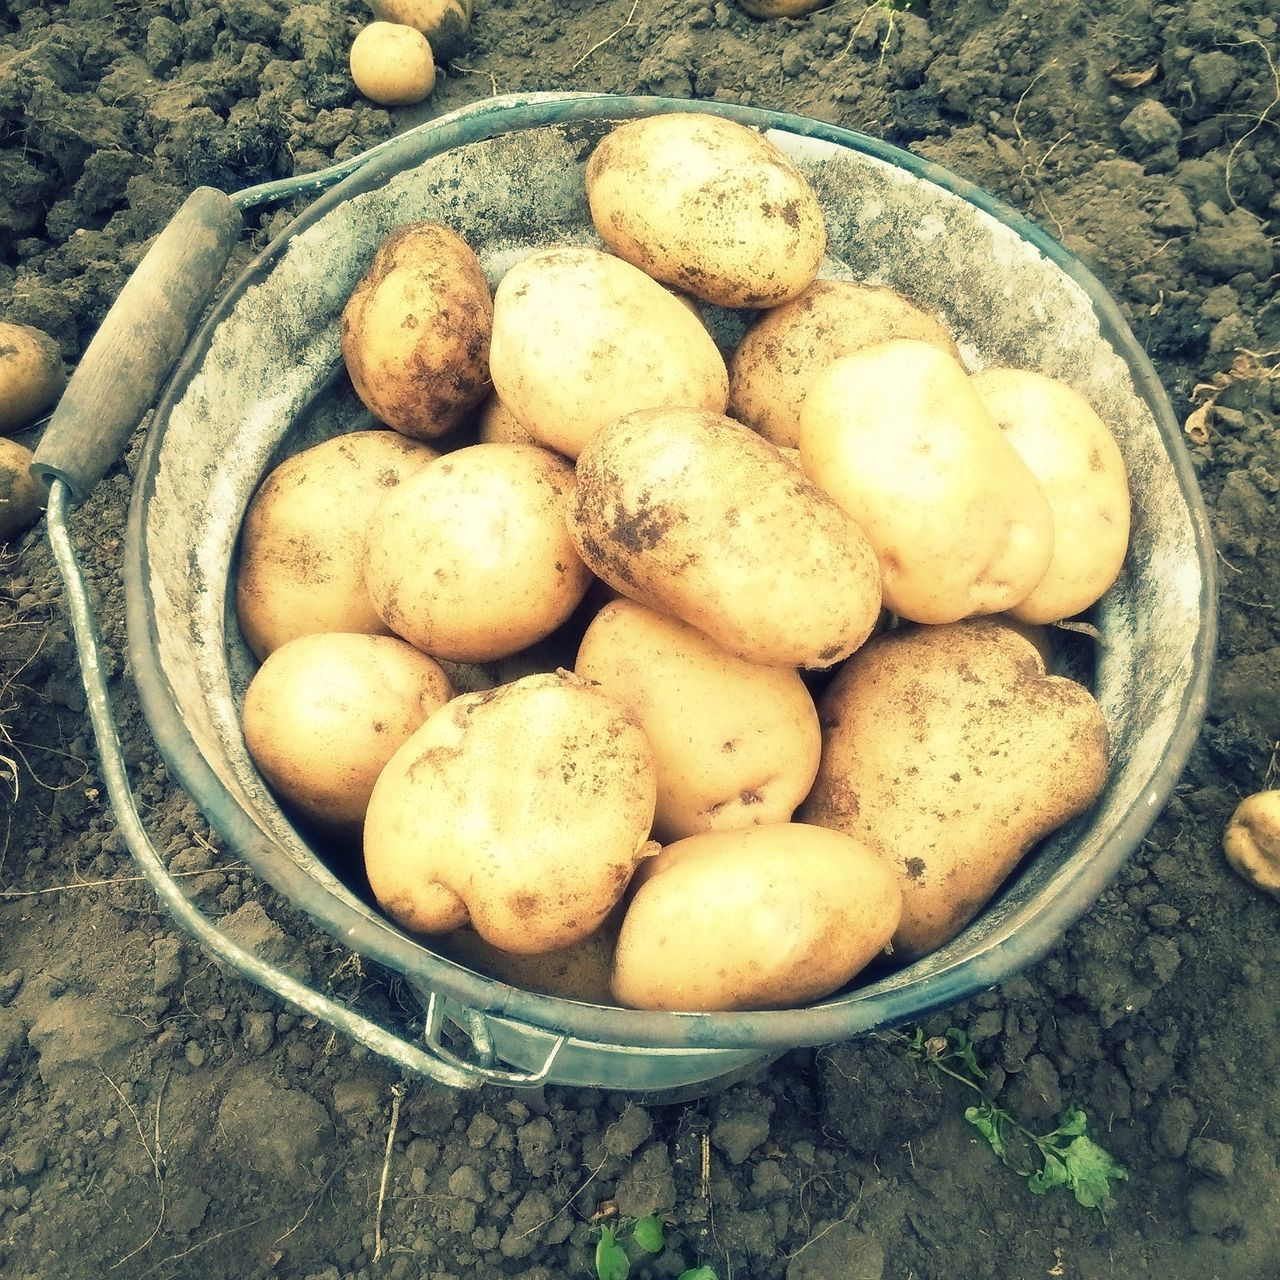 food and drink, high angle view, healthy eating, food, vegetable, root vegetable, raw potato, no people, bowl, abundance, large group of objects, freshness, day, outdoors, close-up, nature